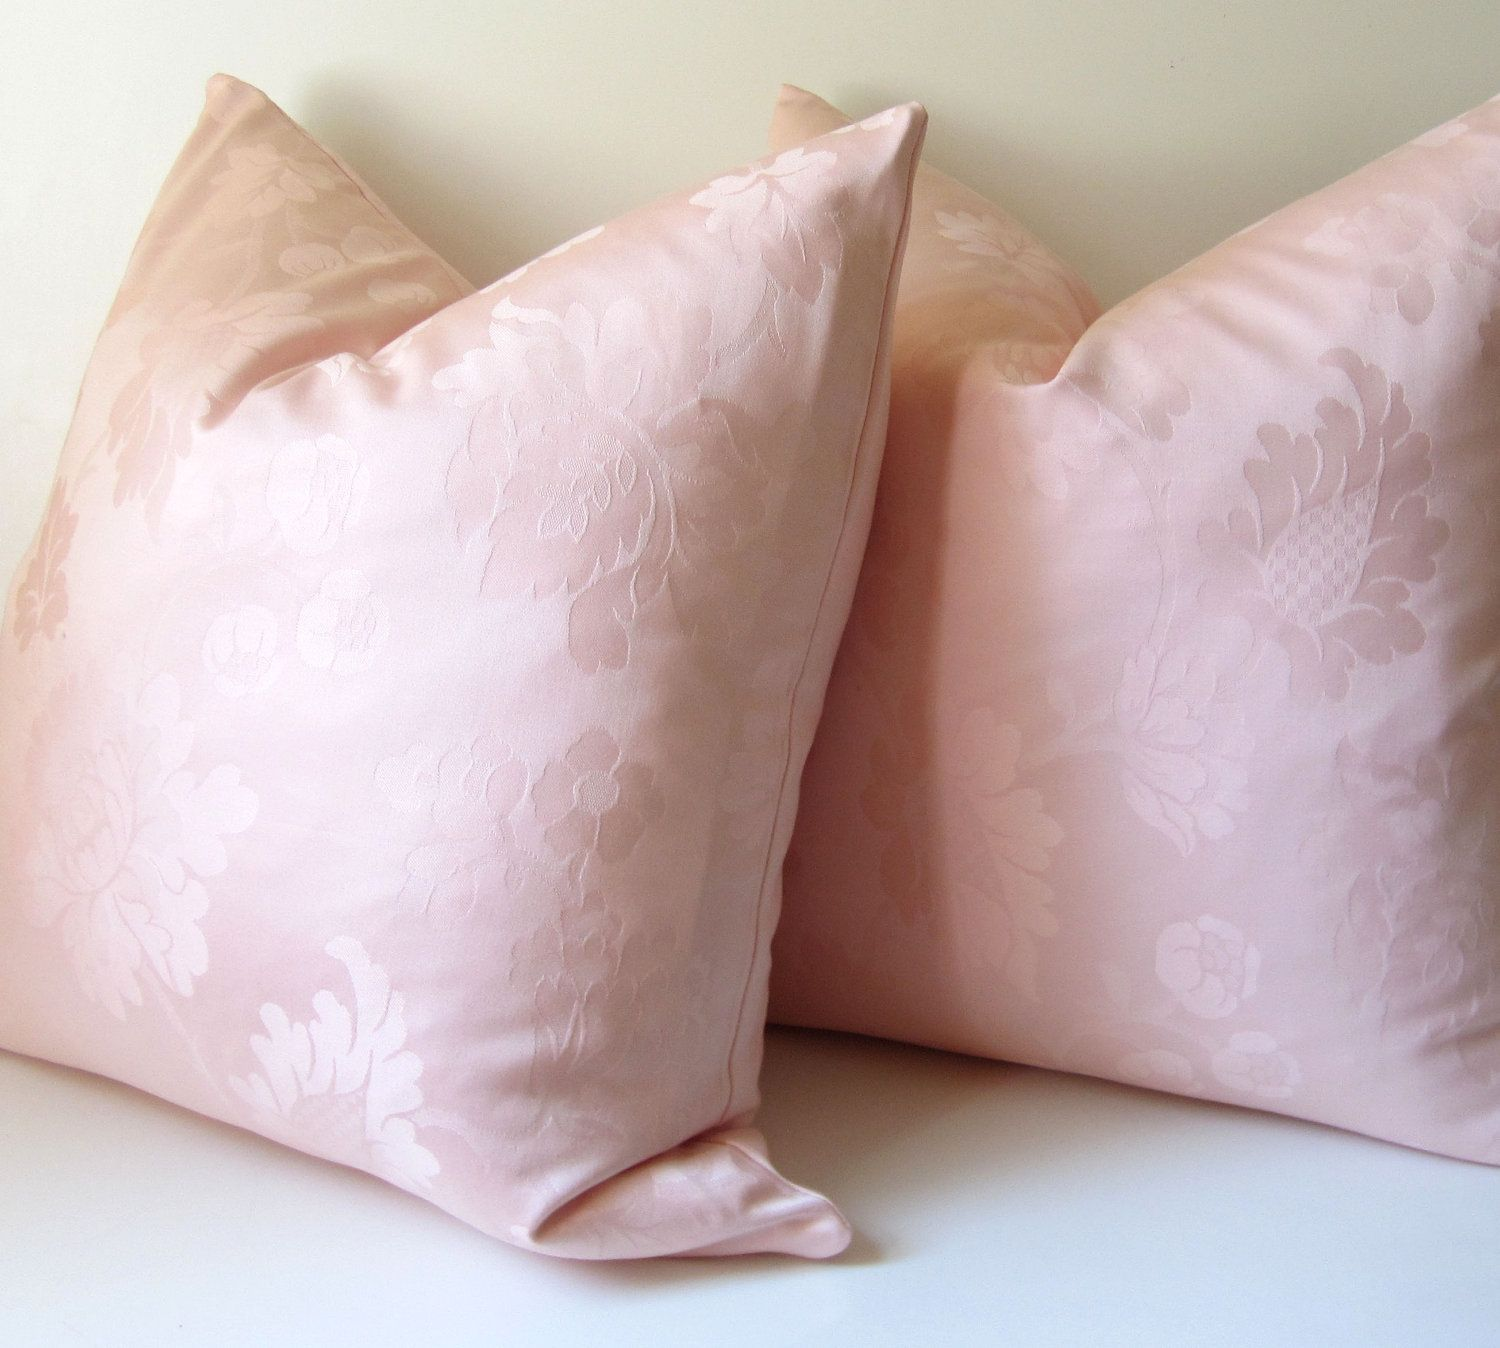 decorative pillow then our to velvet elephant anunderd impressive pale pink linen pillows etsy adds in linens any elegance throw and enthralling studded joyous blush giglio